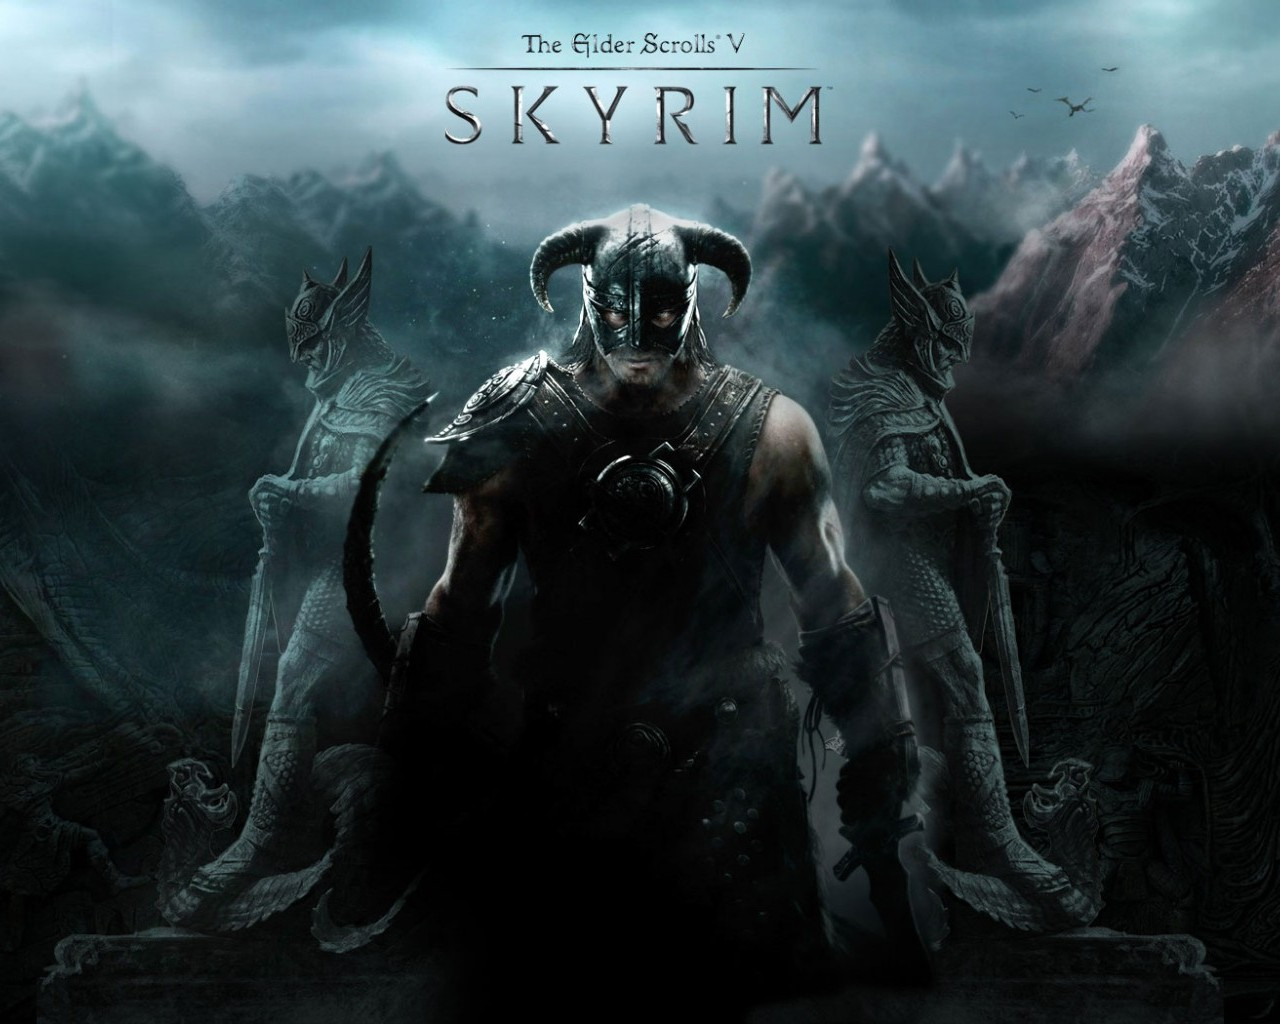 the bing: skyrim wallpaper elder scrolls v